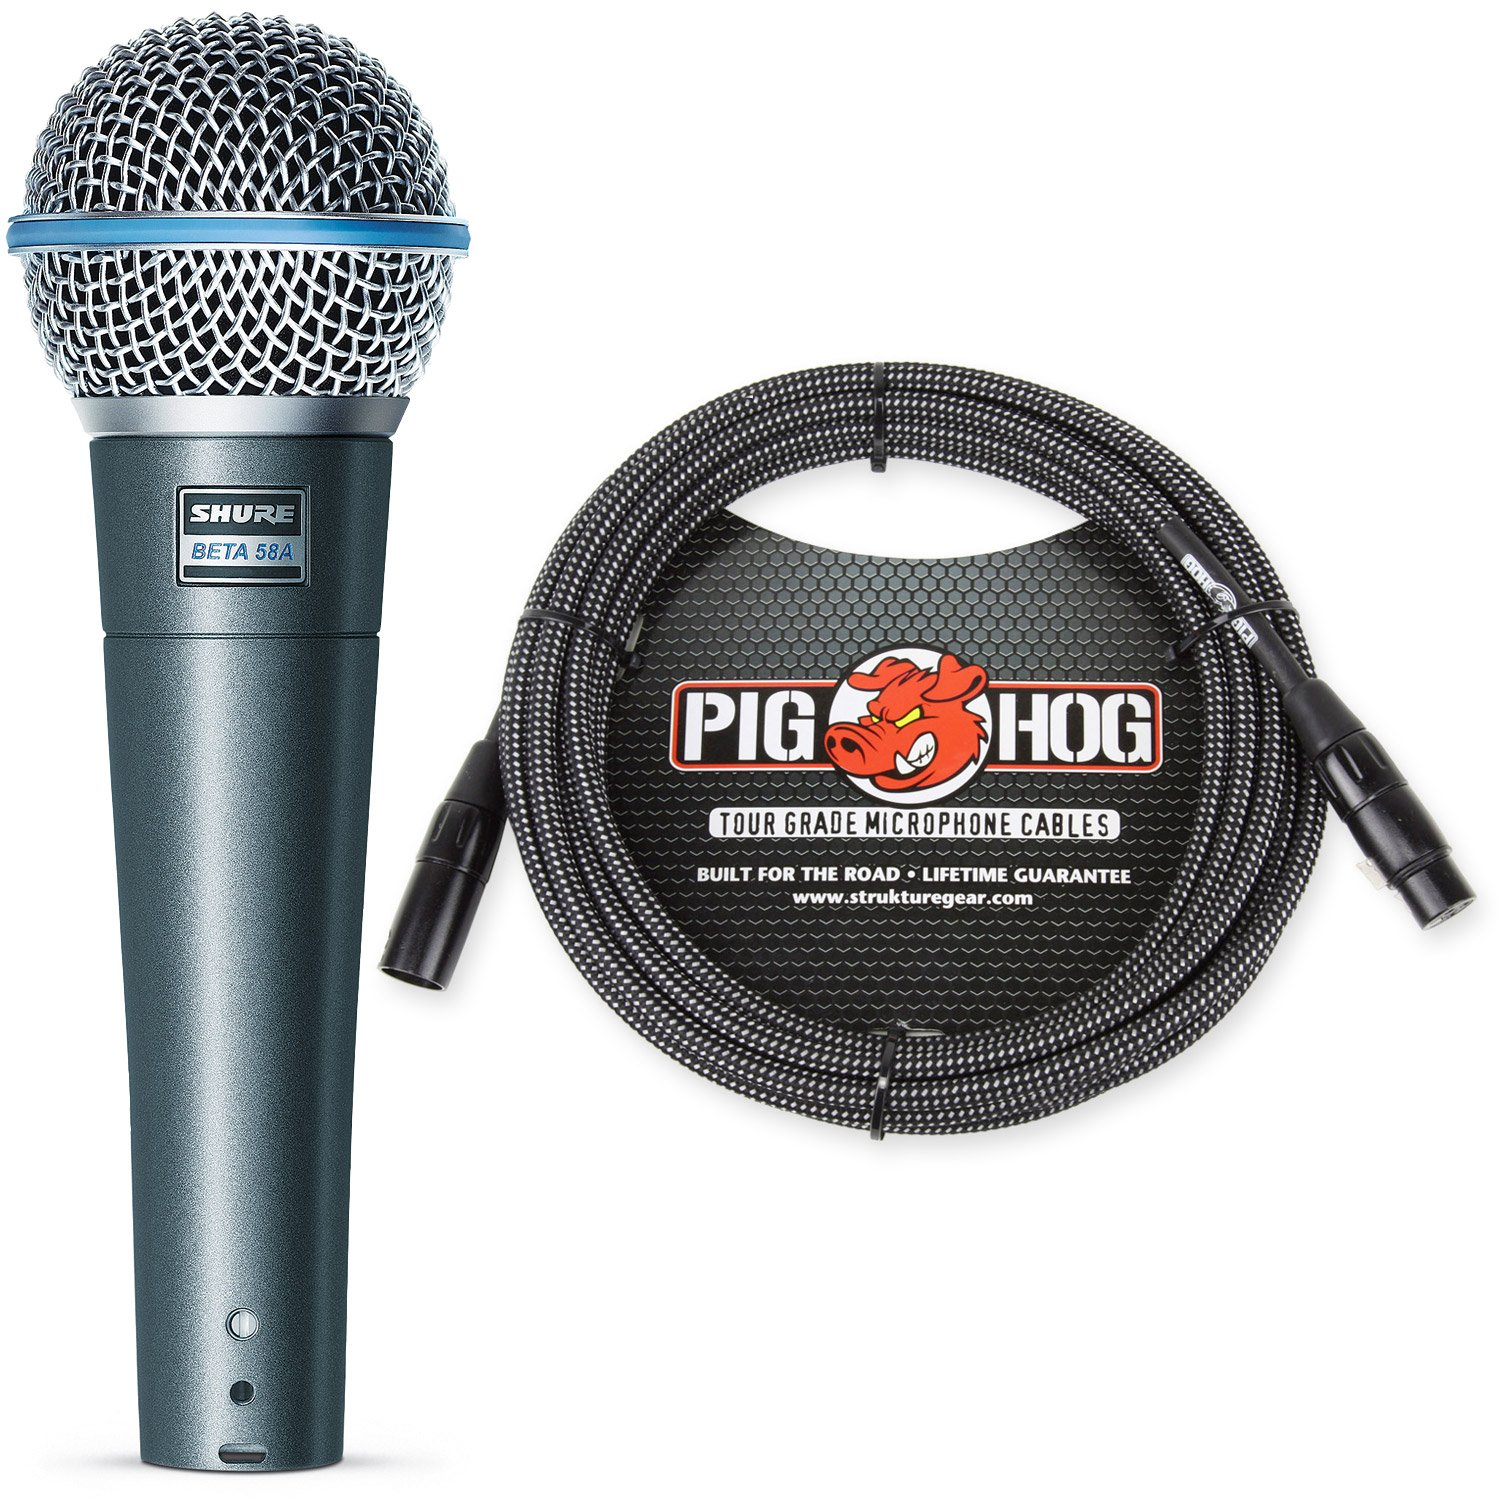 Shure Beta 58A Supercardioid Vocal Microphone & Pig Hog Black & White Woven Mic Cable, 20ft XLR - Bundle by Shure